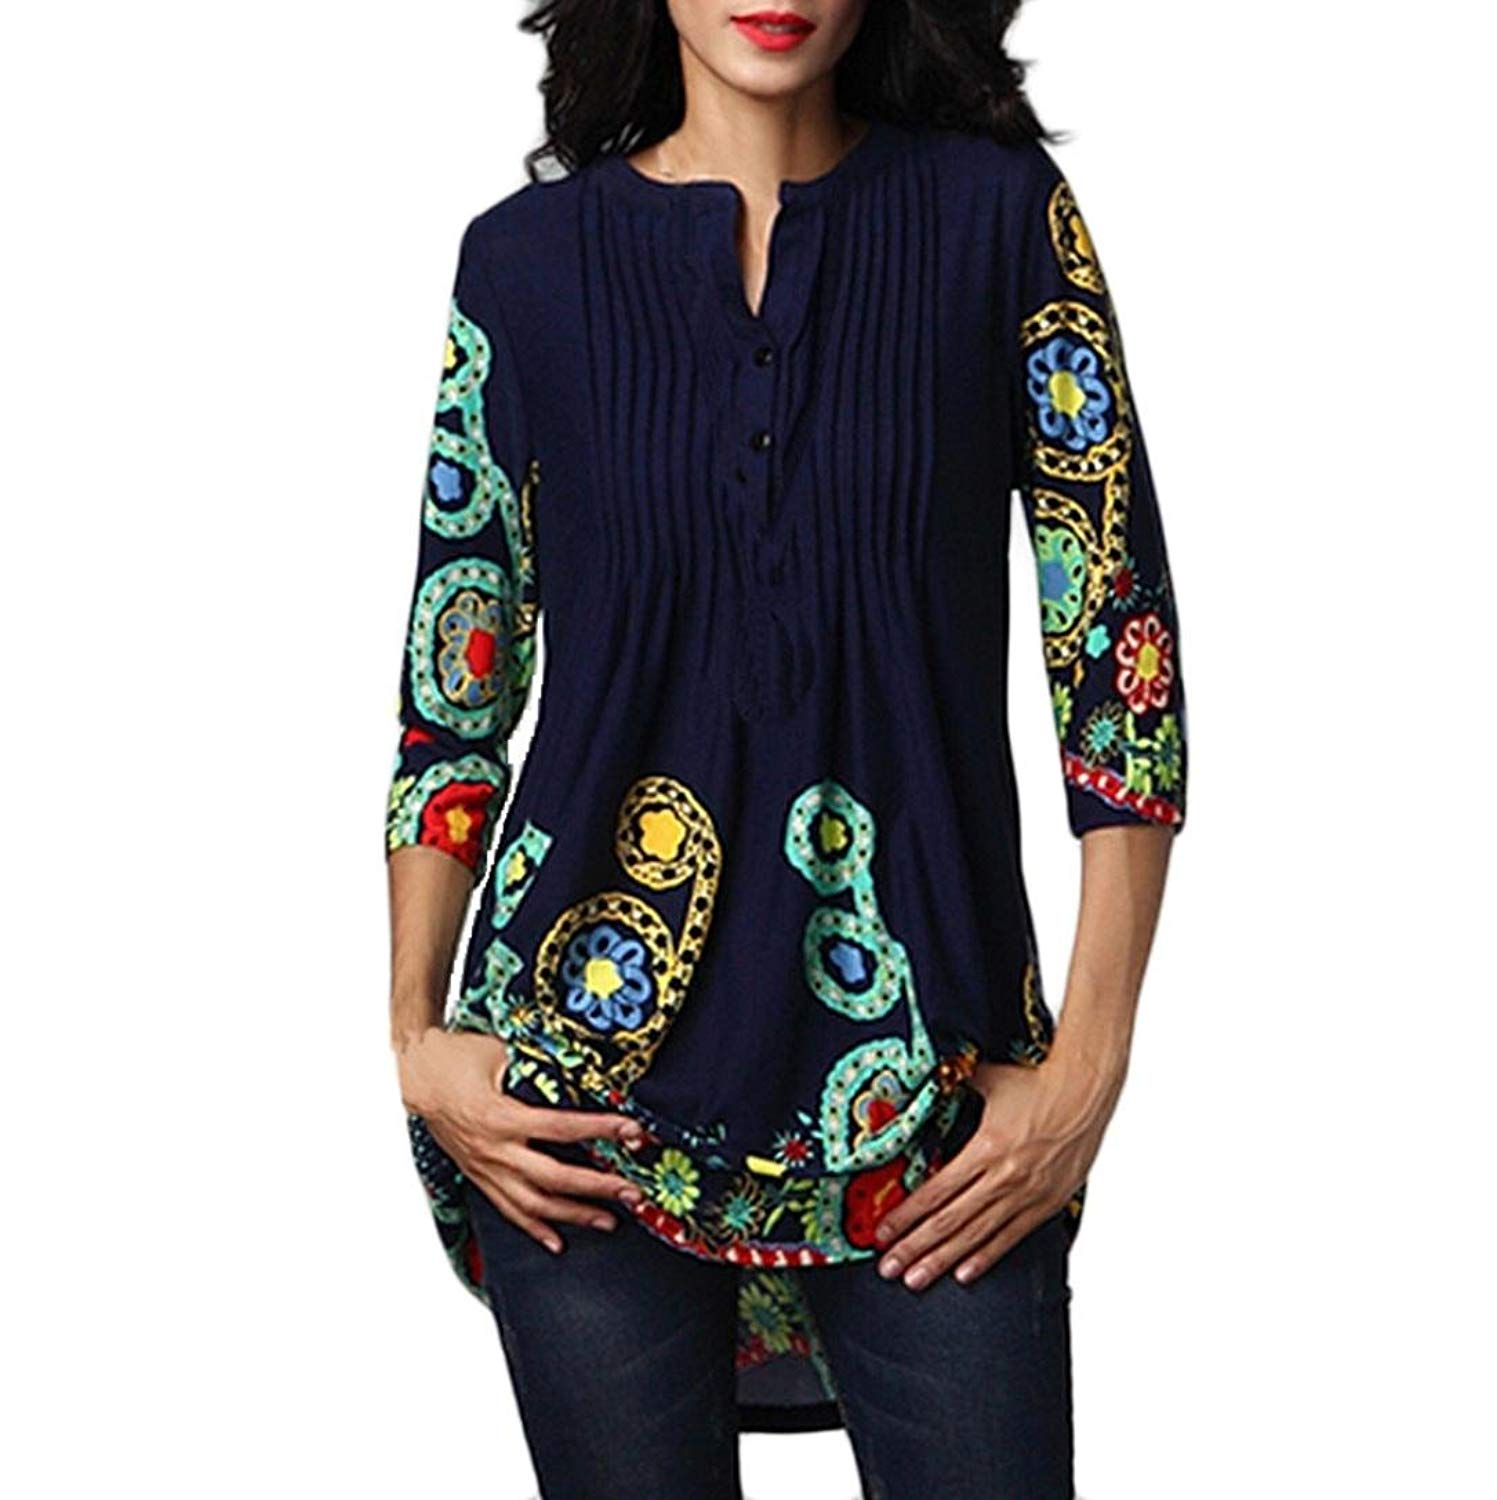 Hot Sale!Fashion 2018 Blouses Summer for Women, Three Quarter Sleeved O-Neck Printed Tops Loose Plus Size T-Shirt for Girls